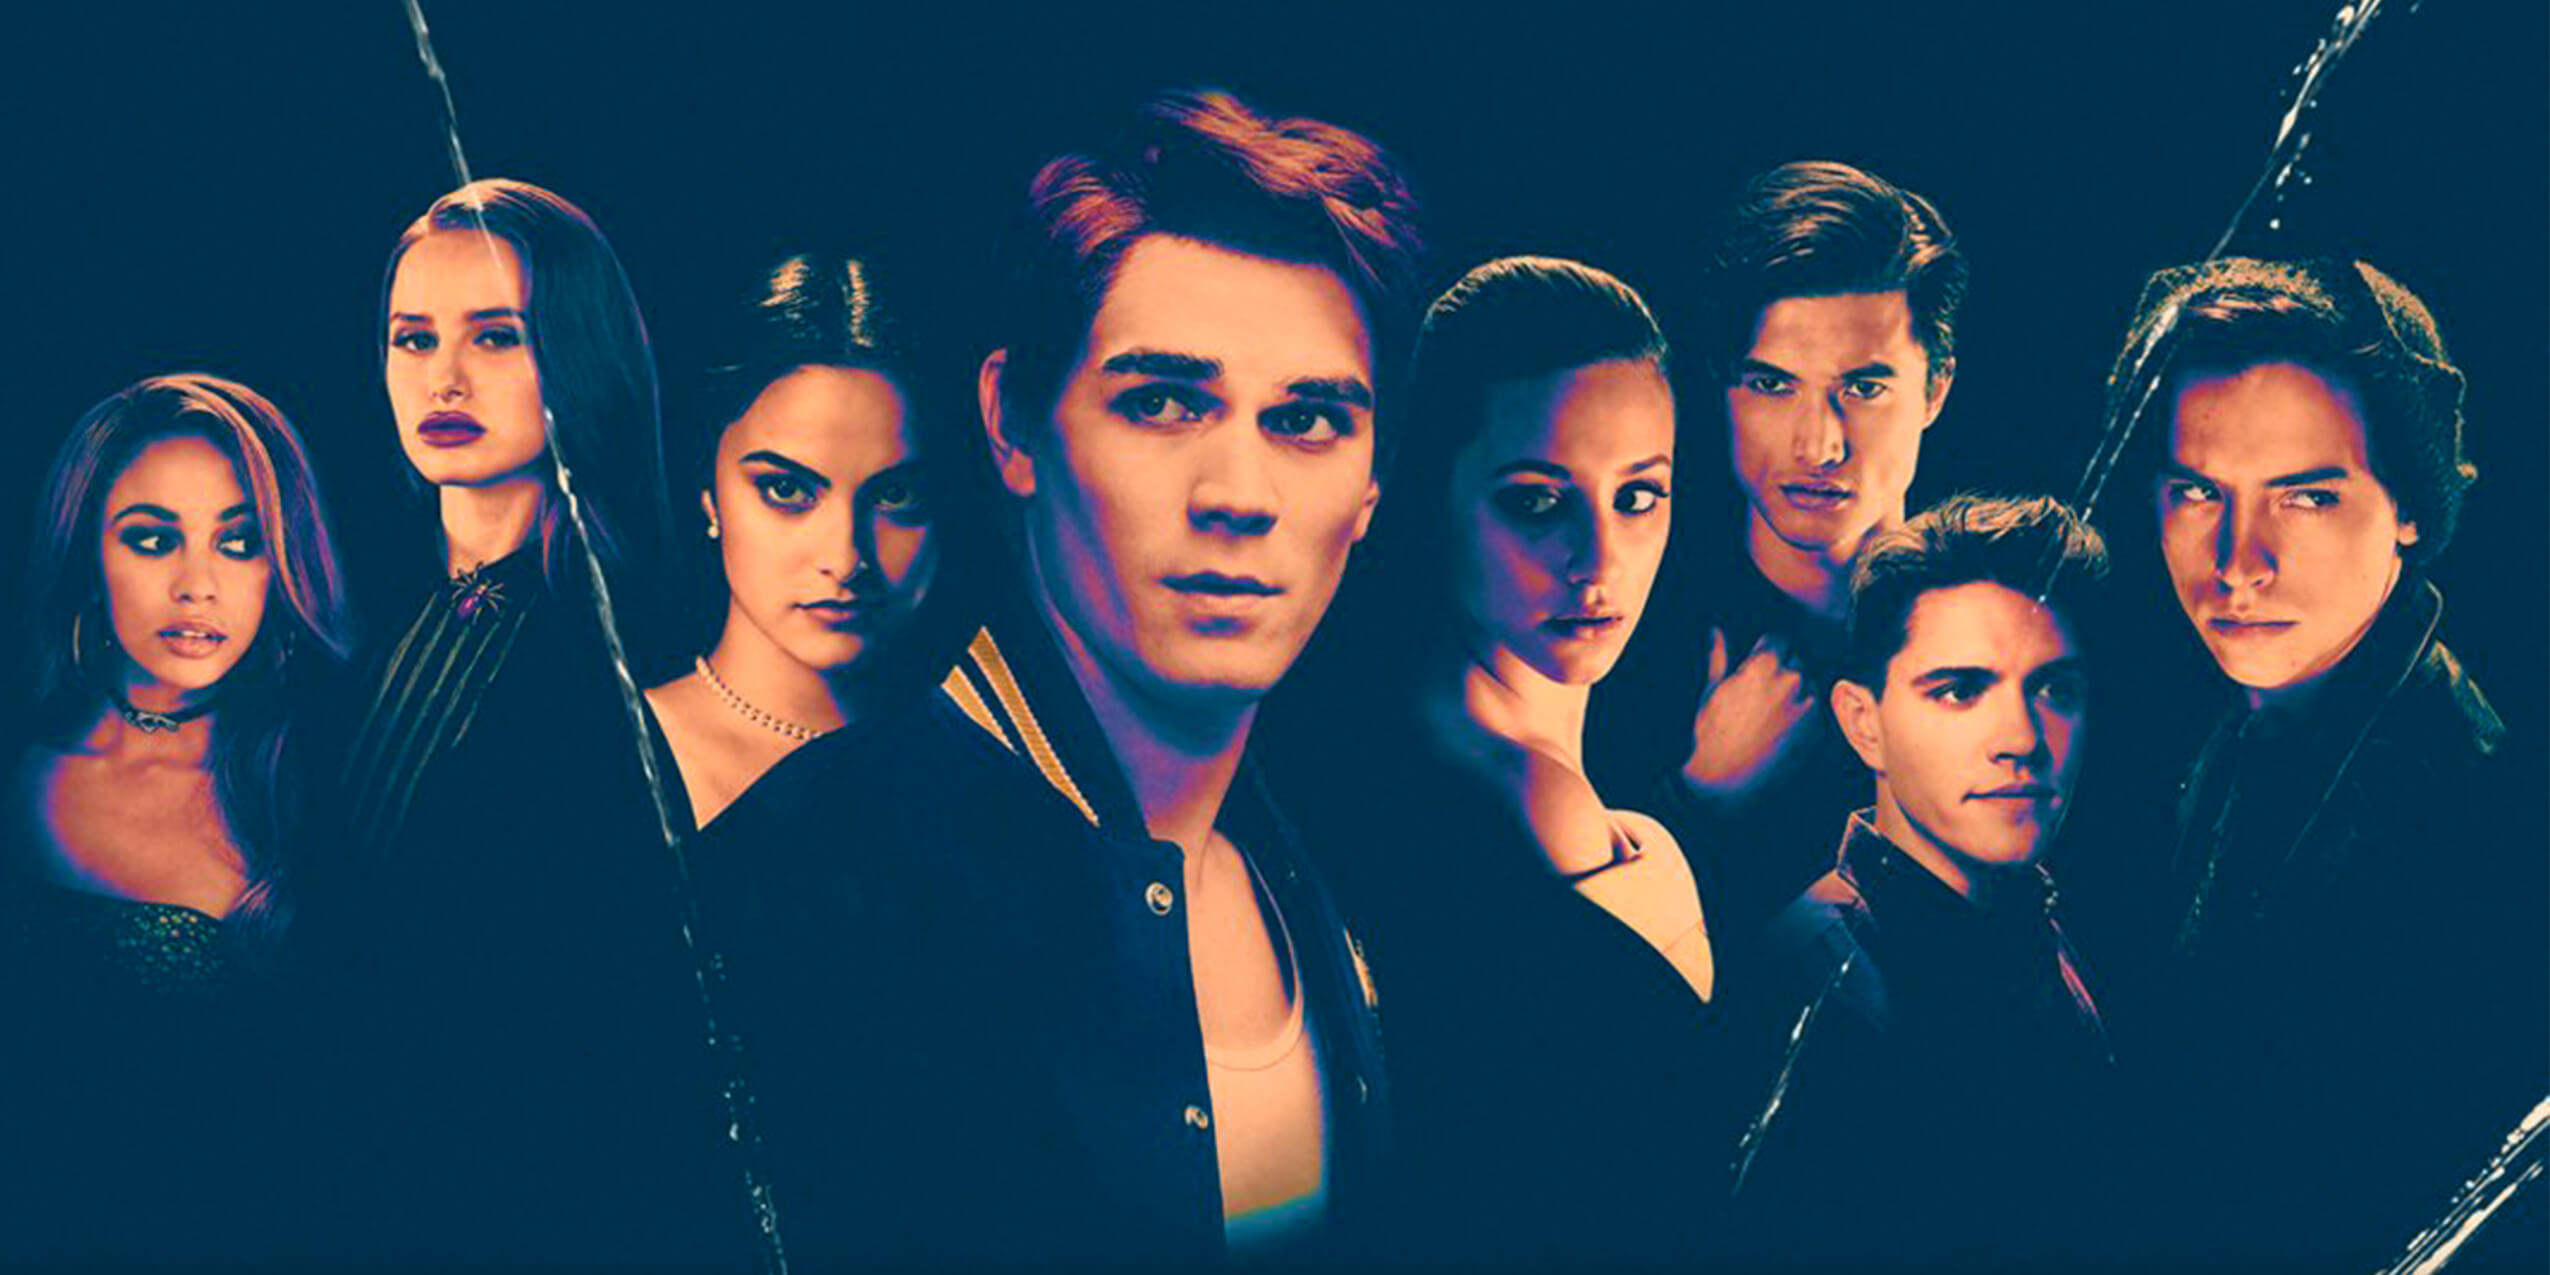 Watch 'Riverdale' Online: Season 4 and Old Episodes